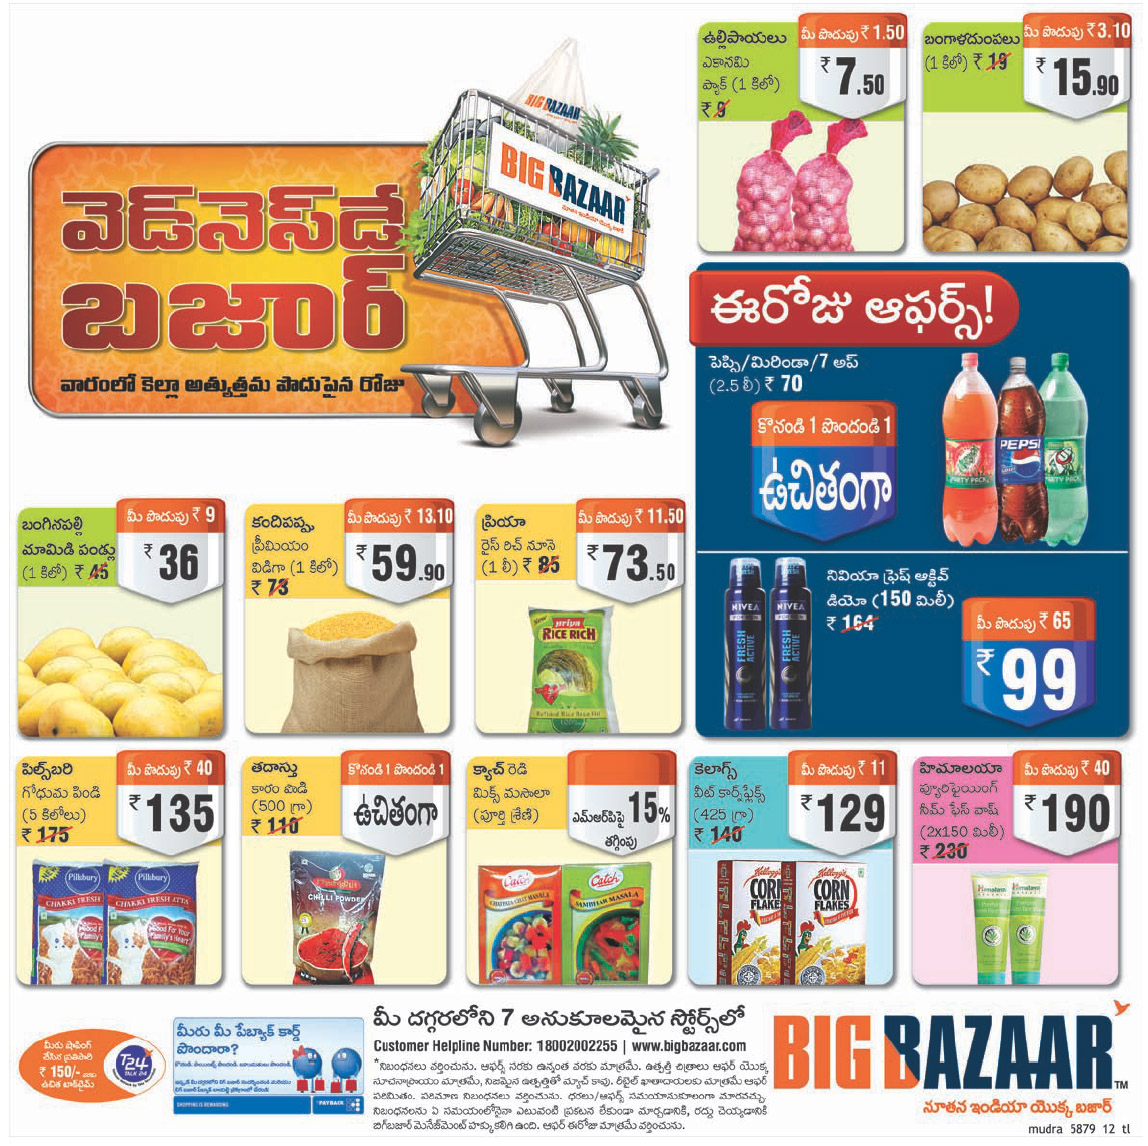 Best supermarkets in bangalore dating 1